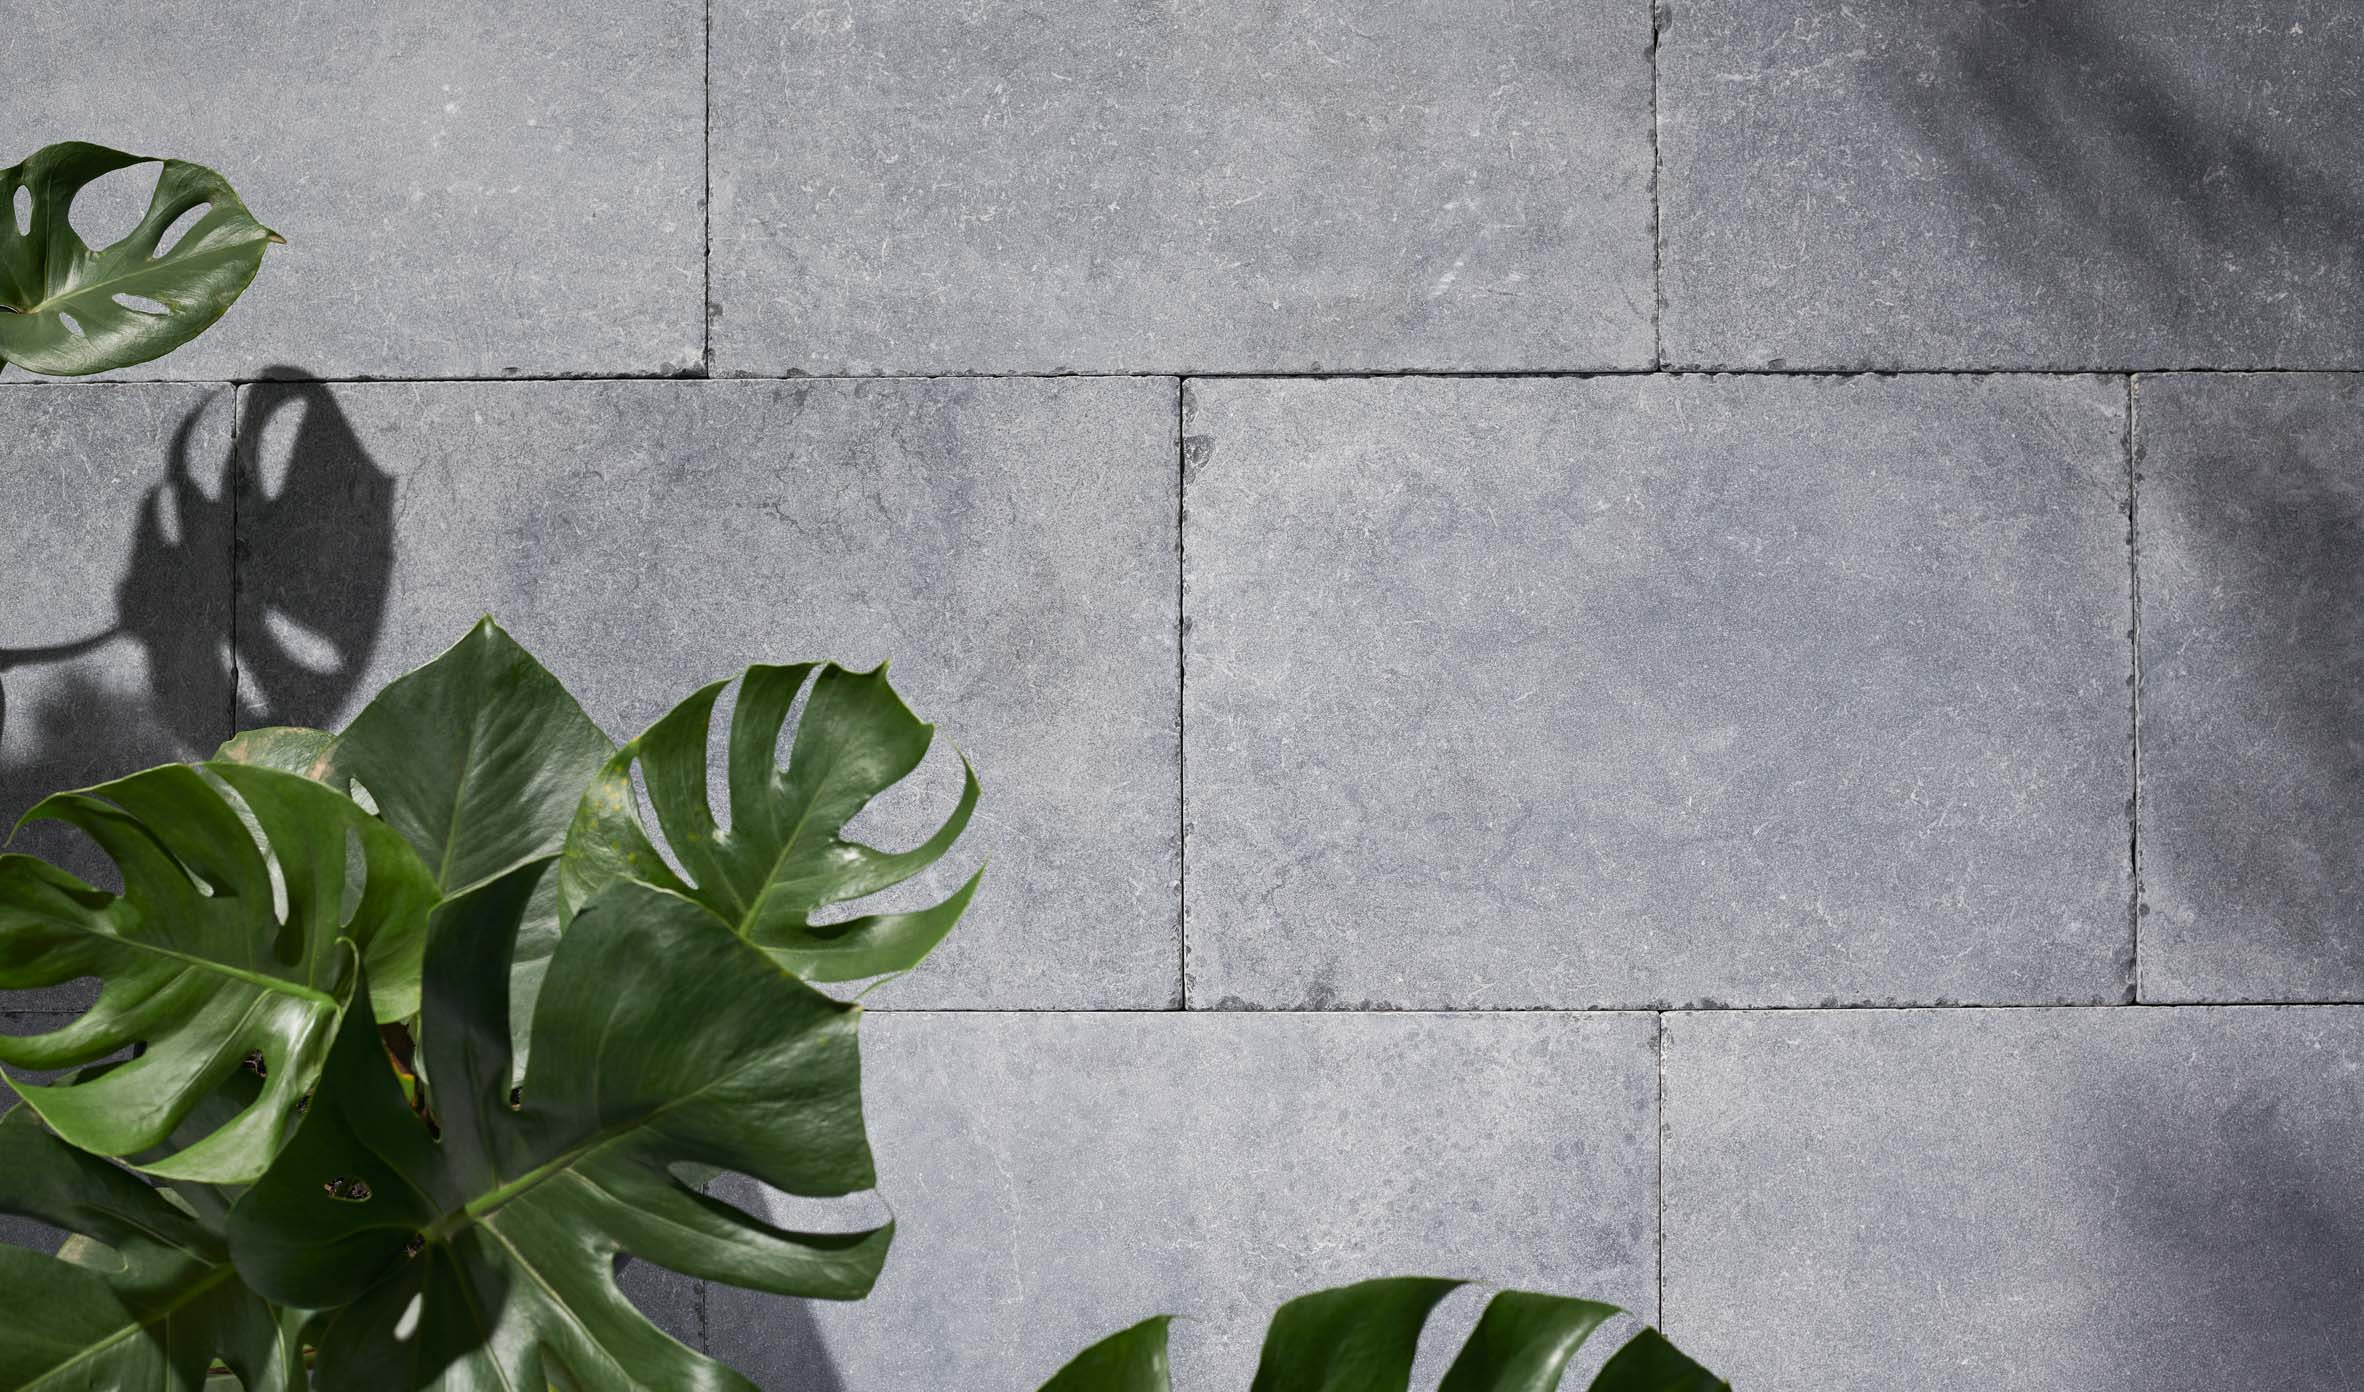 Stone-Pavers-and-Tiles-Outdoor Thumbnail stone-pavers-and-tiles-outdoor-thumbnail-16